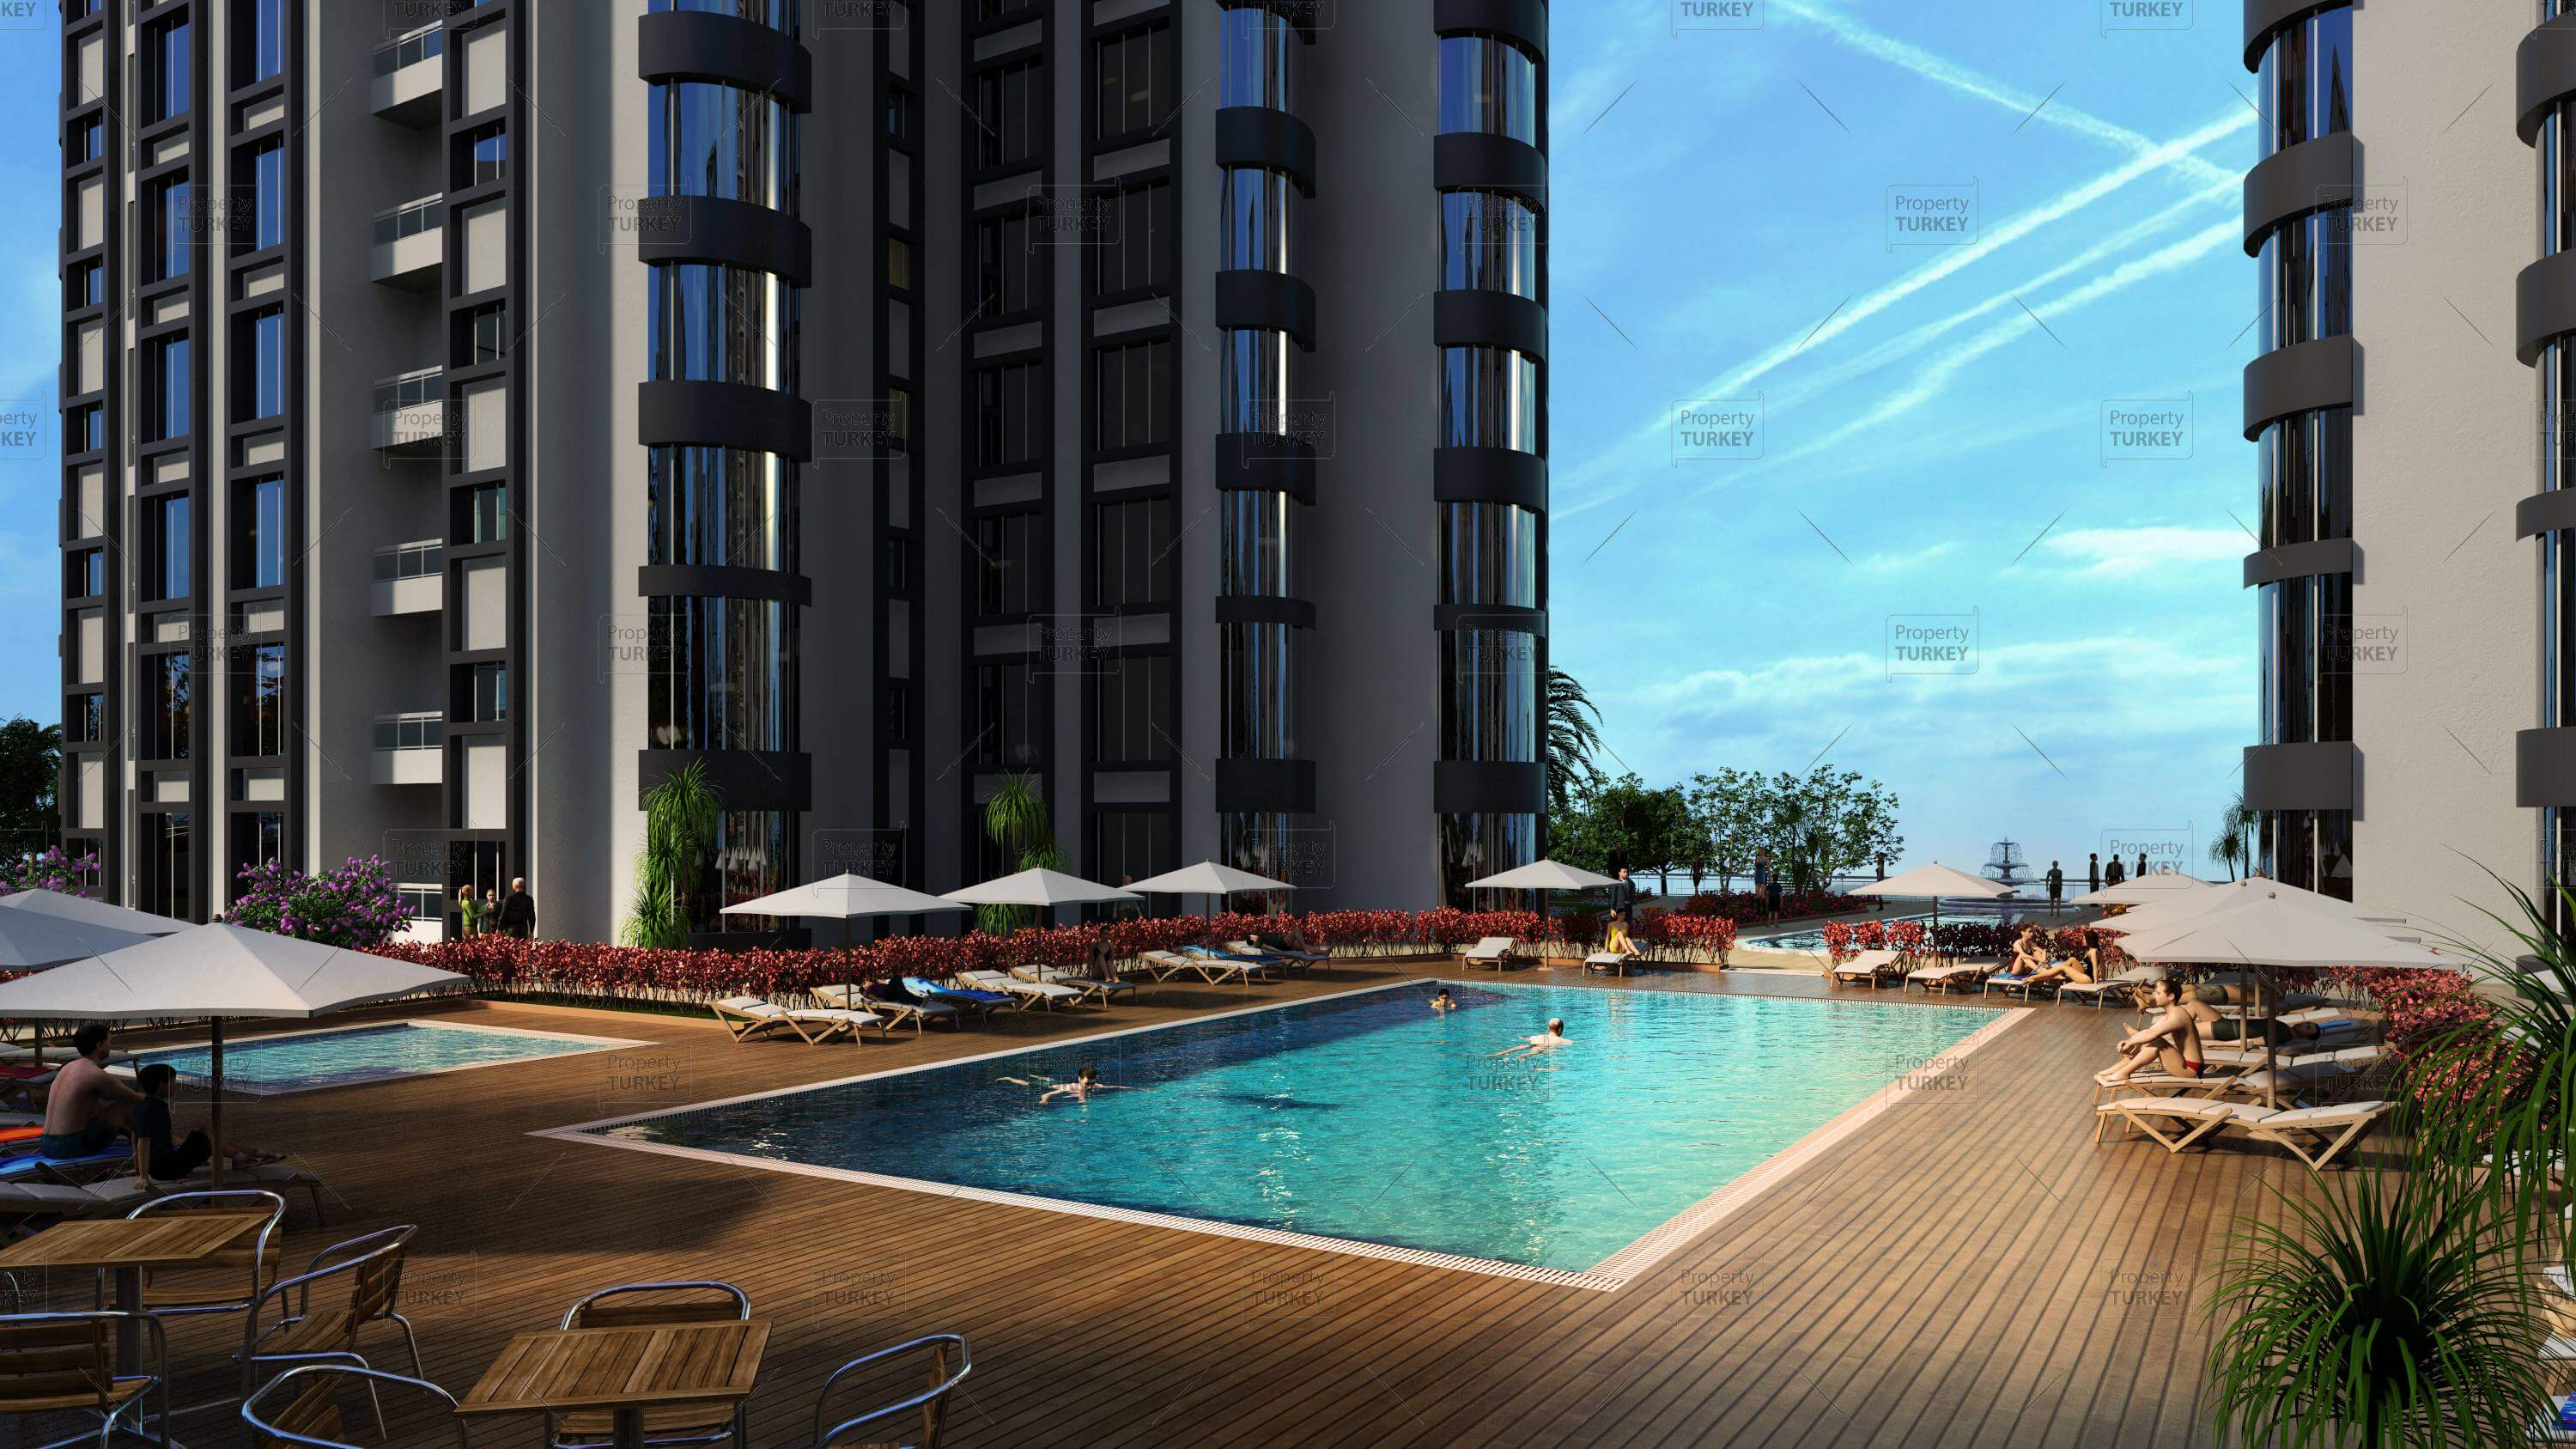 Purchase Esenyurt Istanbul Towers pre launch prices Property Turkey